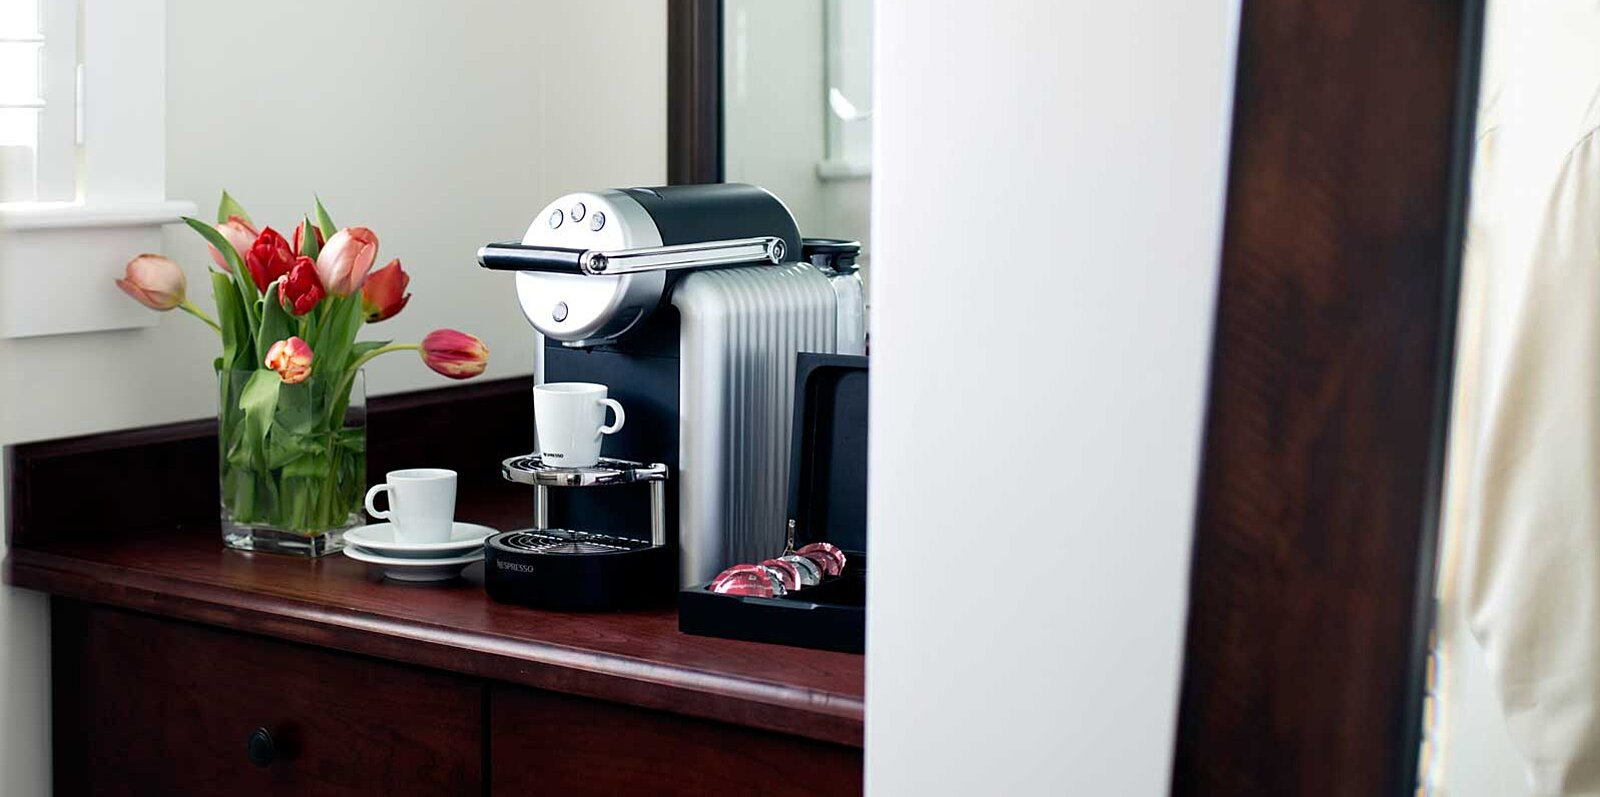 Why You Might Not Want to Use That Hotel Room Coffee Maker   Travel +  Leisure